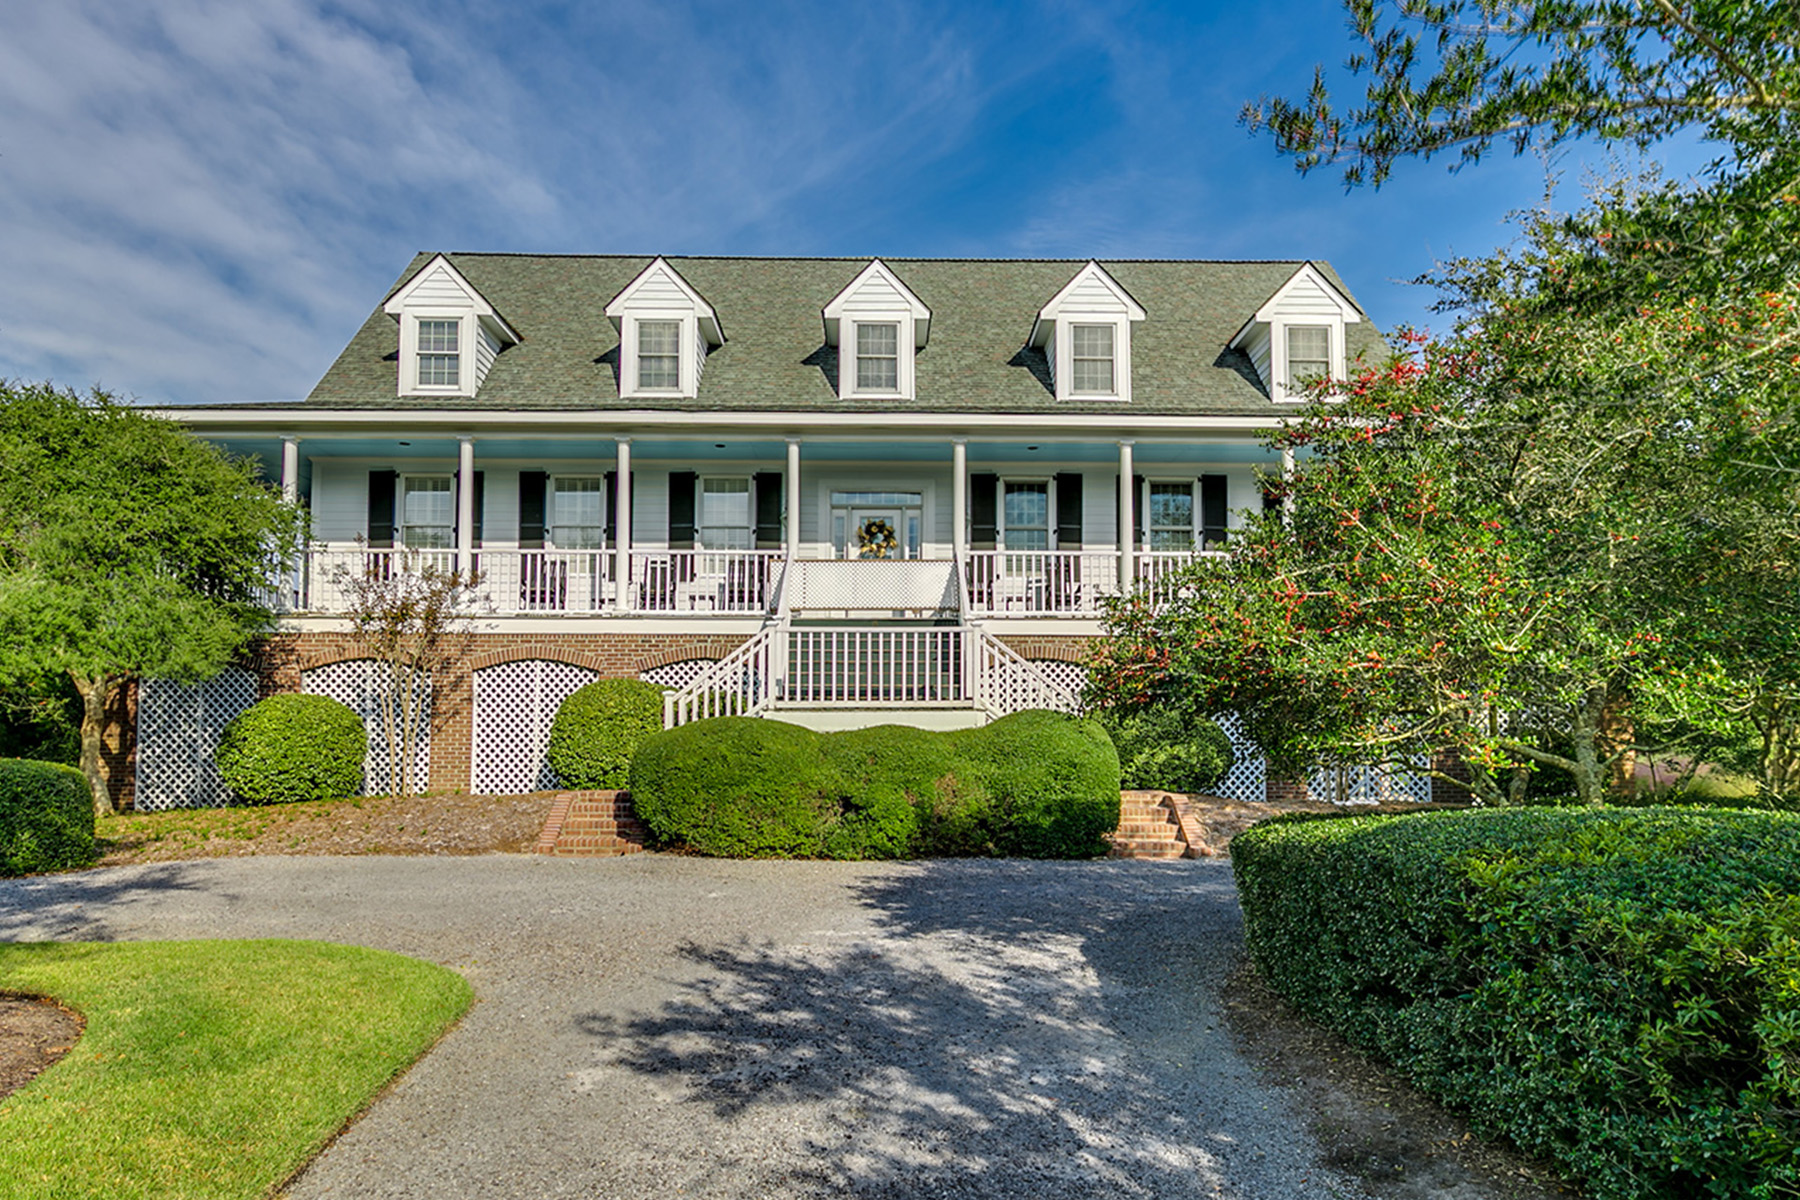 Additional photo for property listing at 25 Cheraw Way, Georgetown, SC 29440 25  Cheraw Way Georgetown, South Carolina 29440 United States